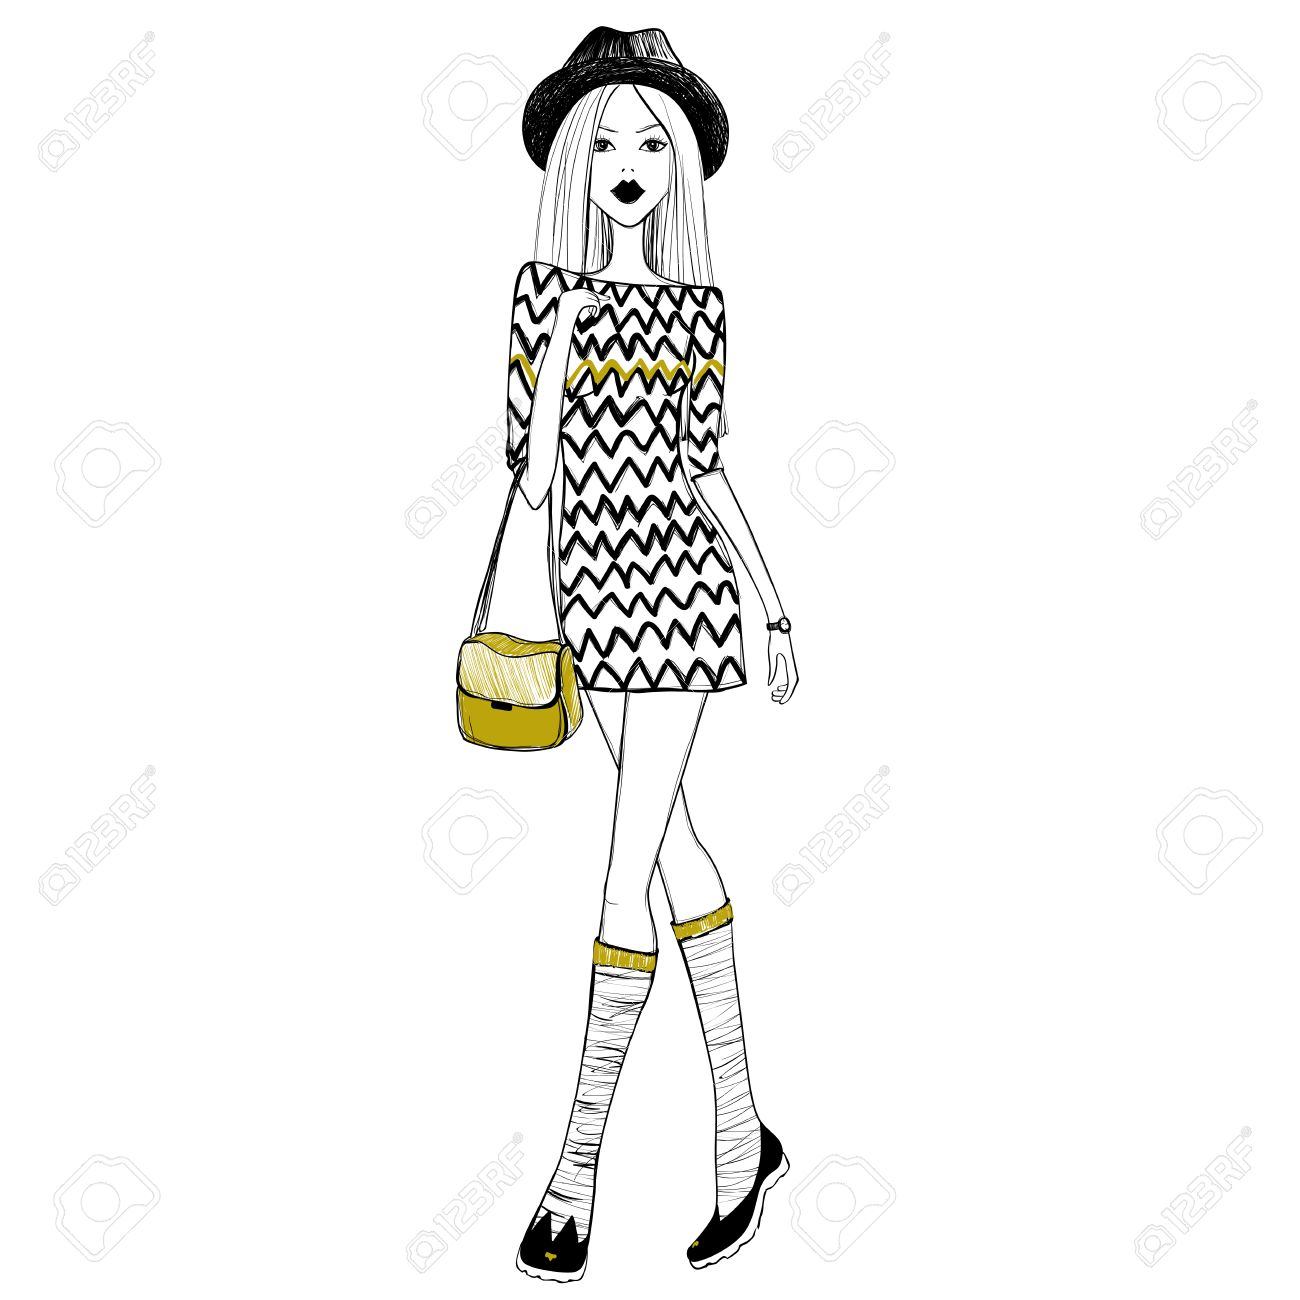 3261aea61 Sketch Girl. Sketch Model. Fashion Girl. Stylish Woman. Female ...